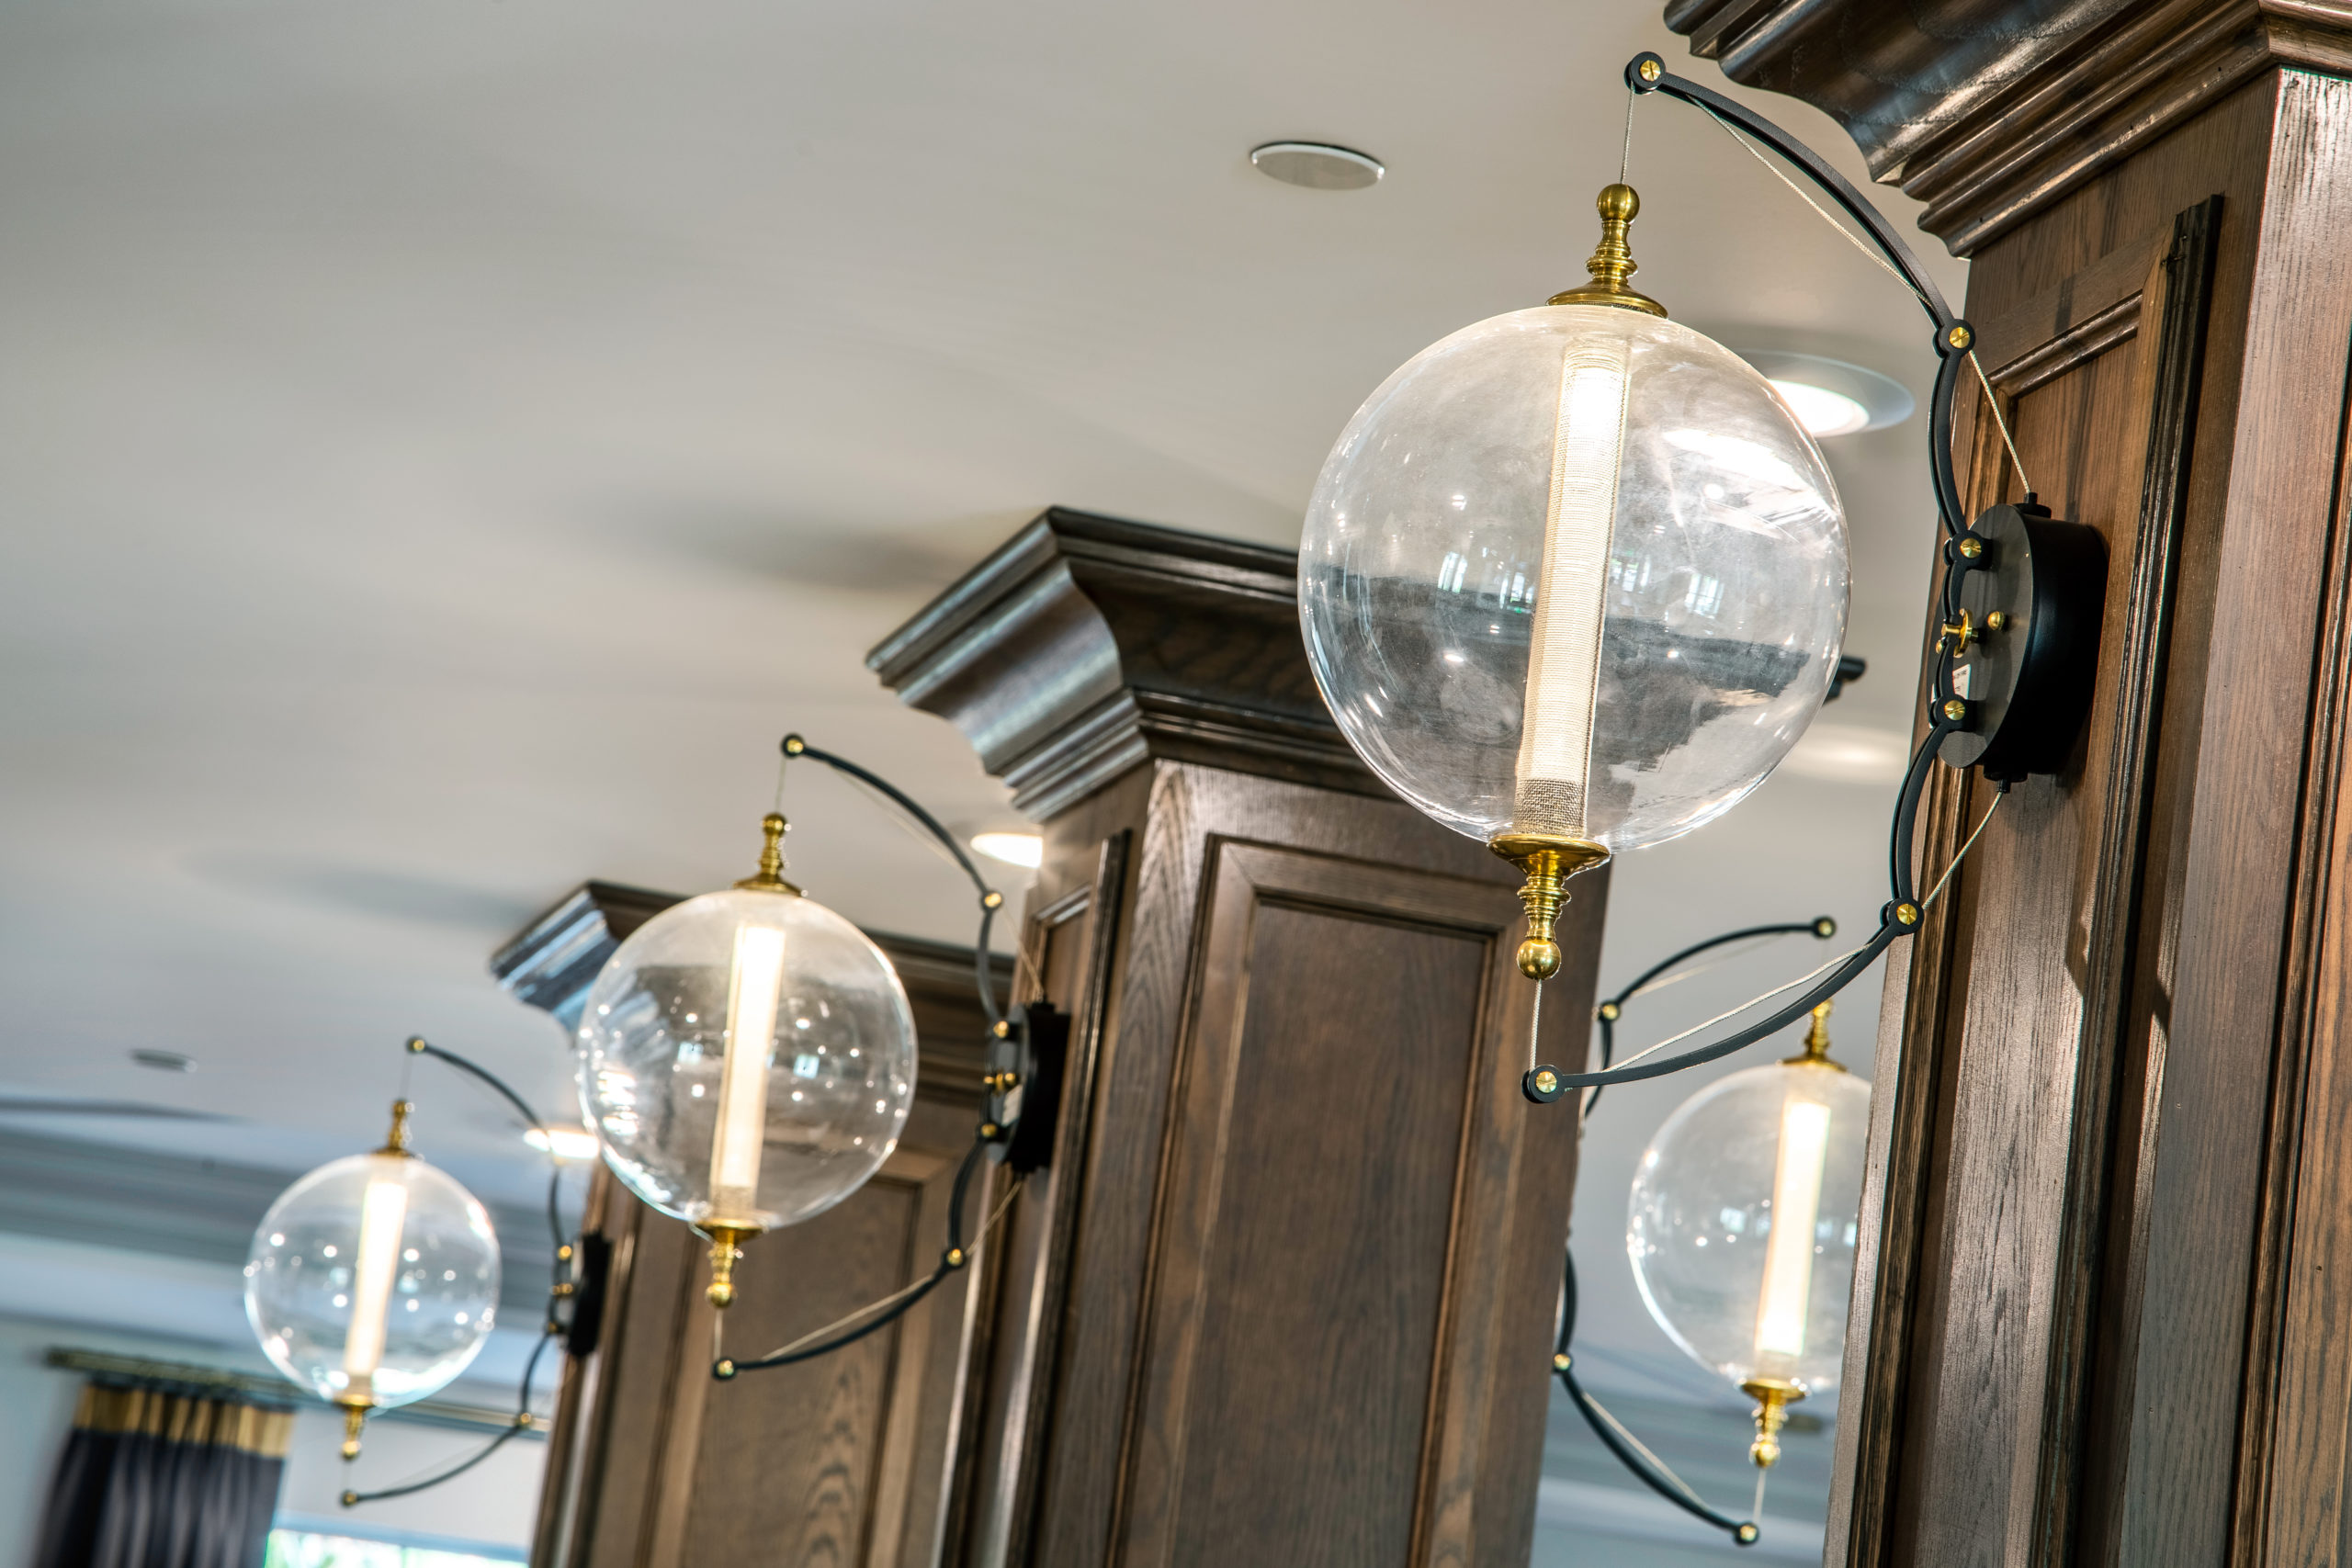 Glass globe light fixtures with gold and black mounting on wooden columns in Longleaf common space